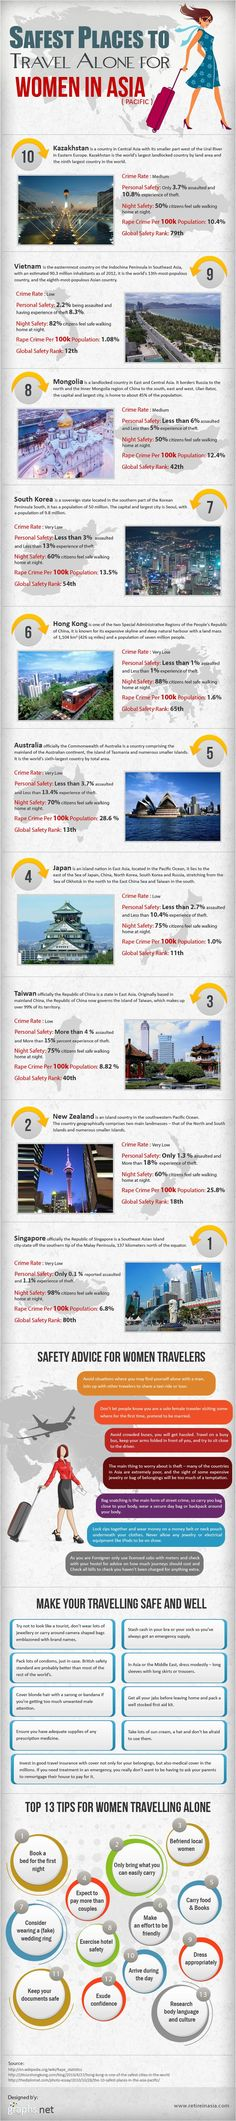 great guide for any women looking to do some solo #travel in asia or the pacific. #infographic